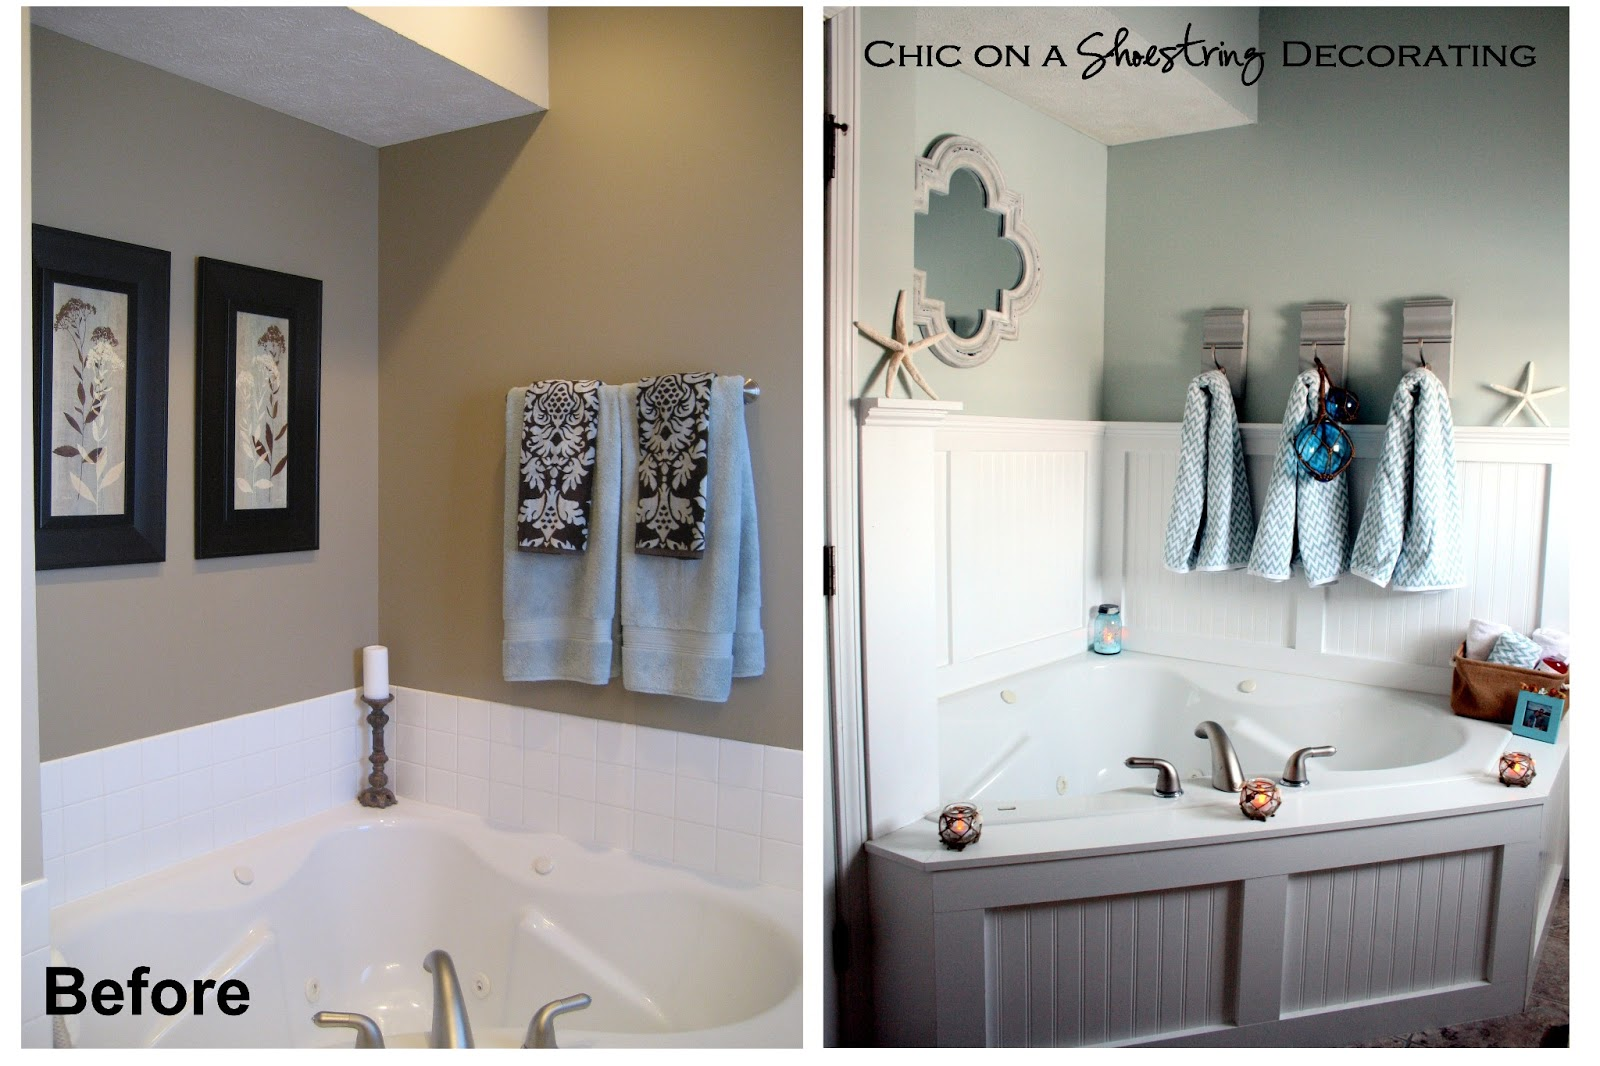 Chic on a shoestring decorating beachy bathroom reveal for Beach decor bathroom ideas